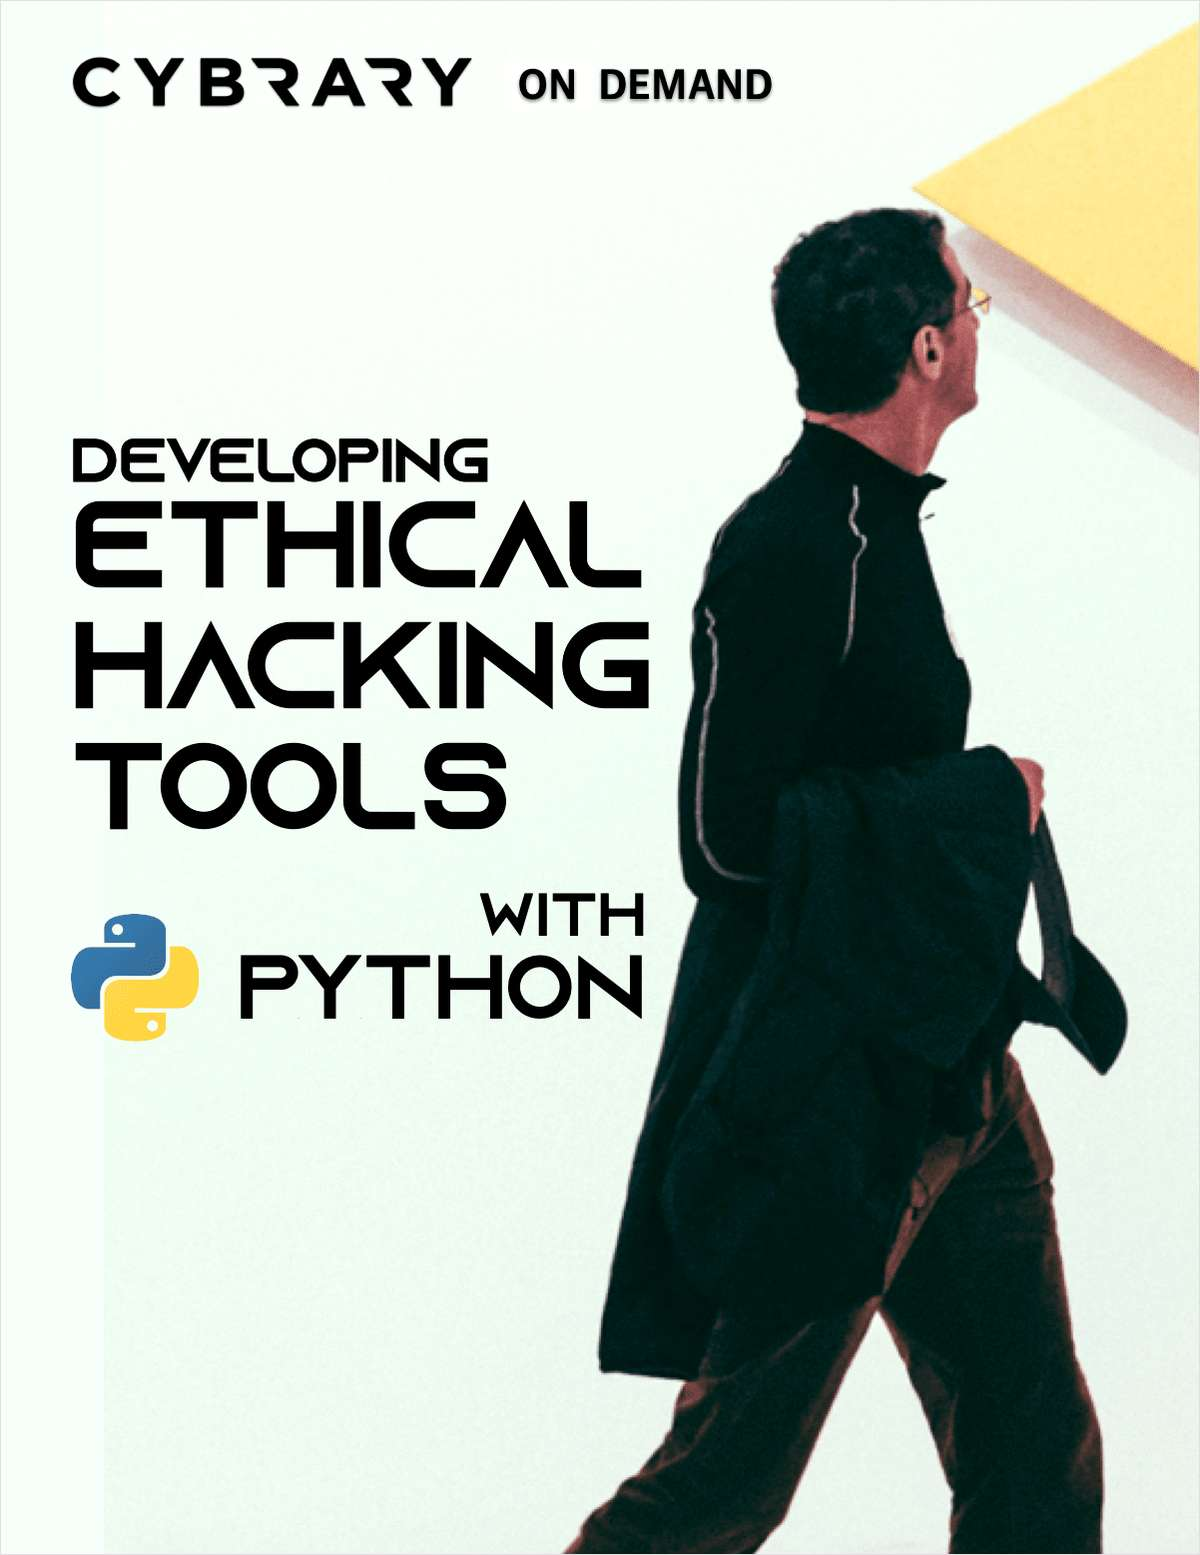 Developing Ethical Hacking Tools with Python